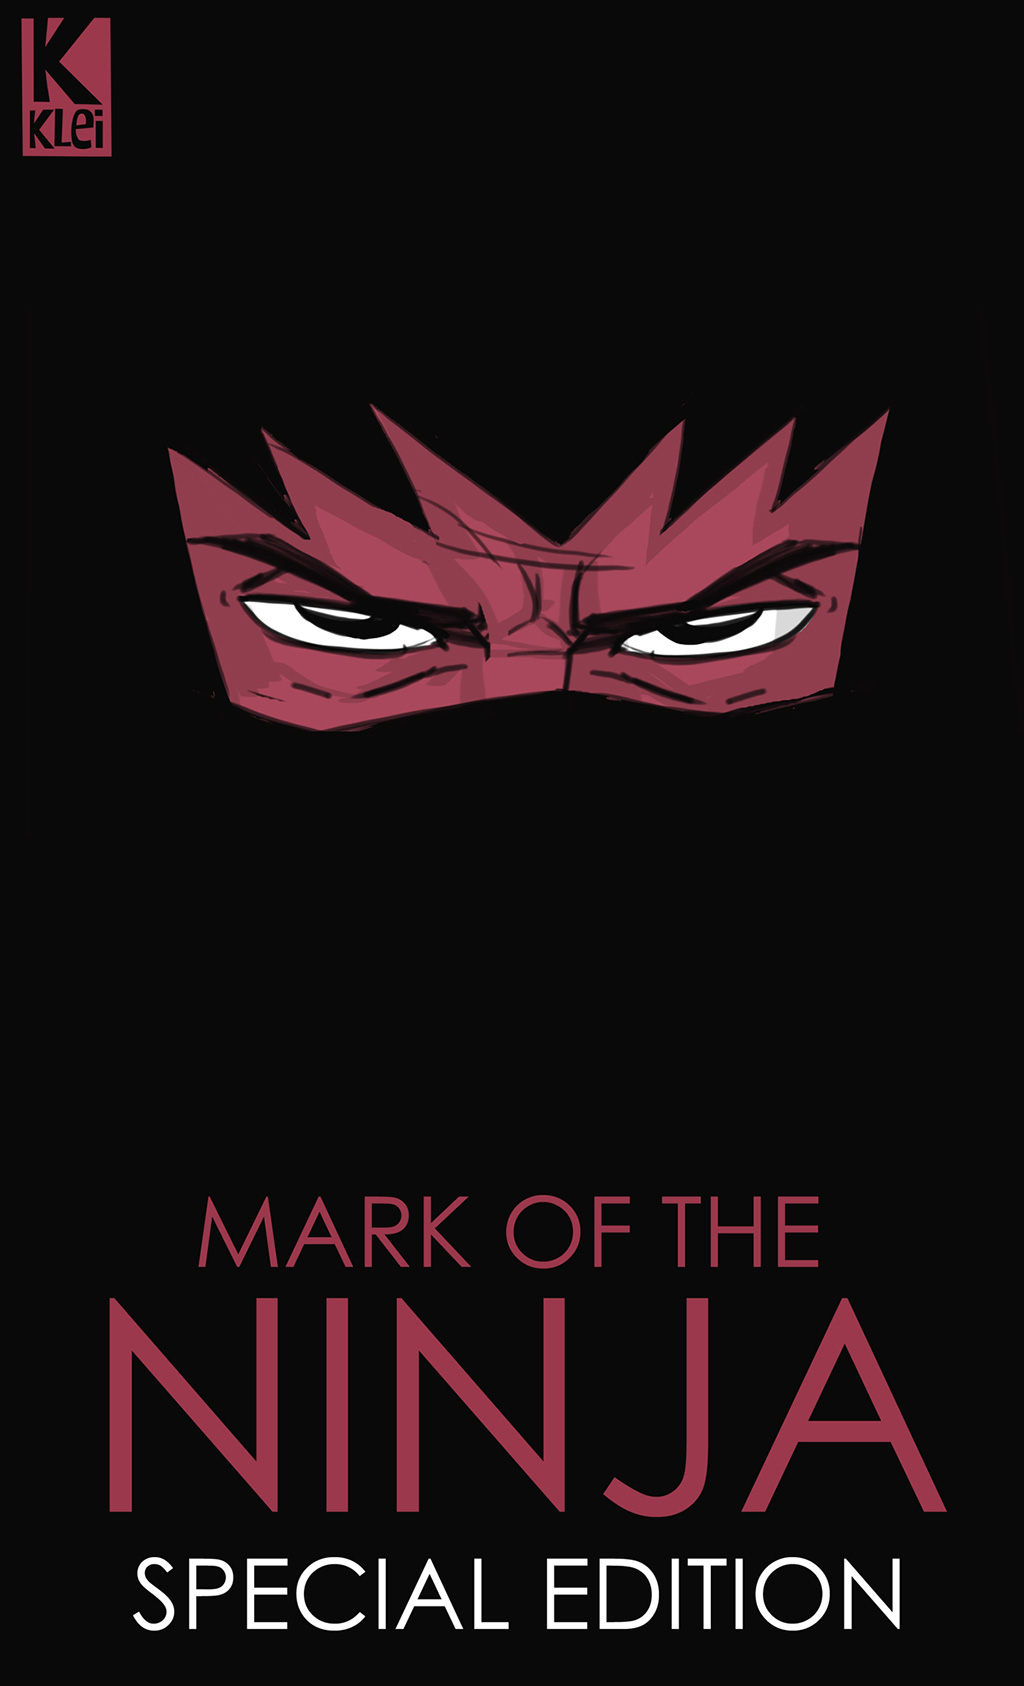 Mark Of The Ninja S Special Edition Dlc Adds New Level